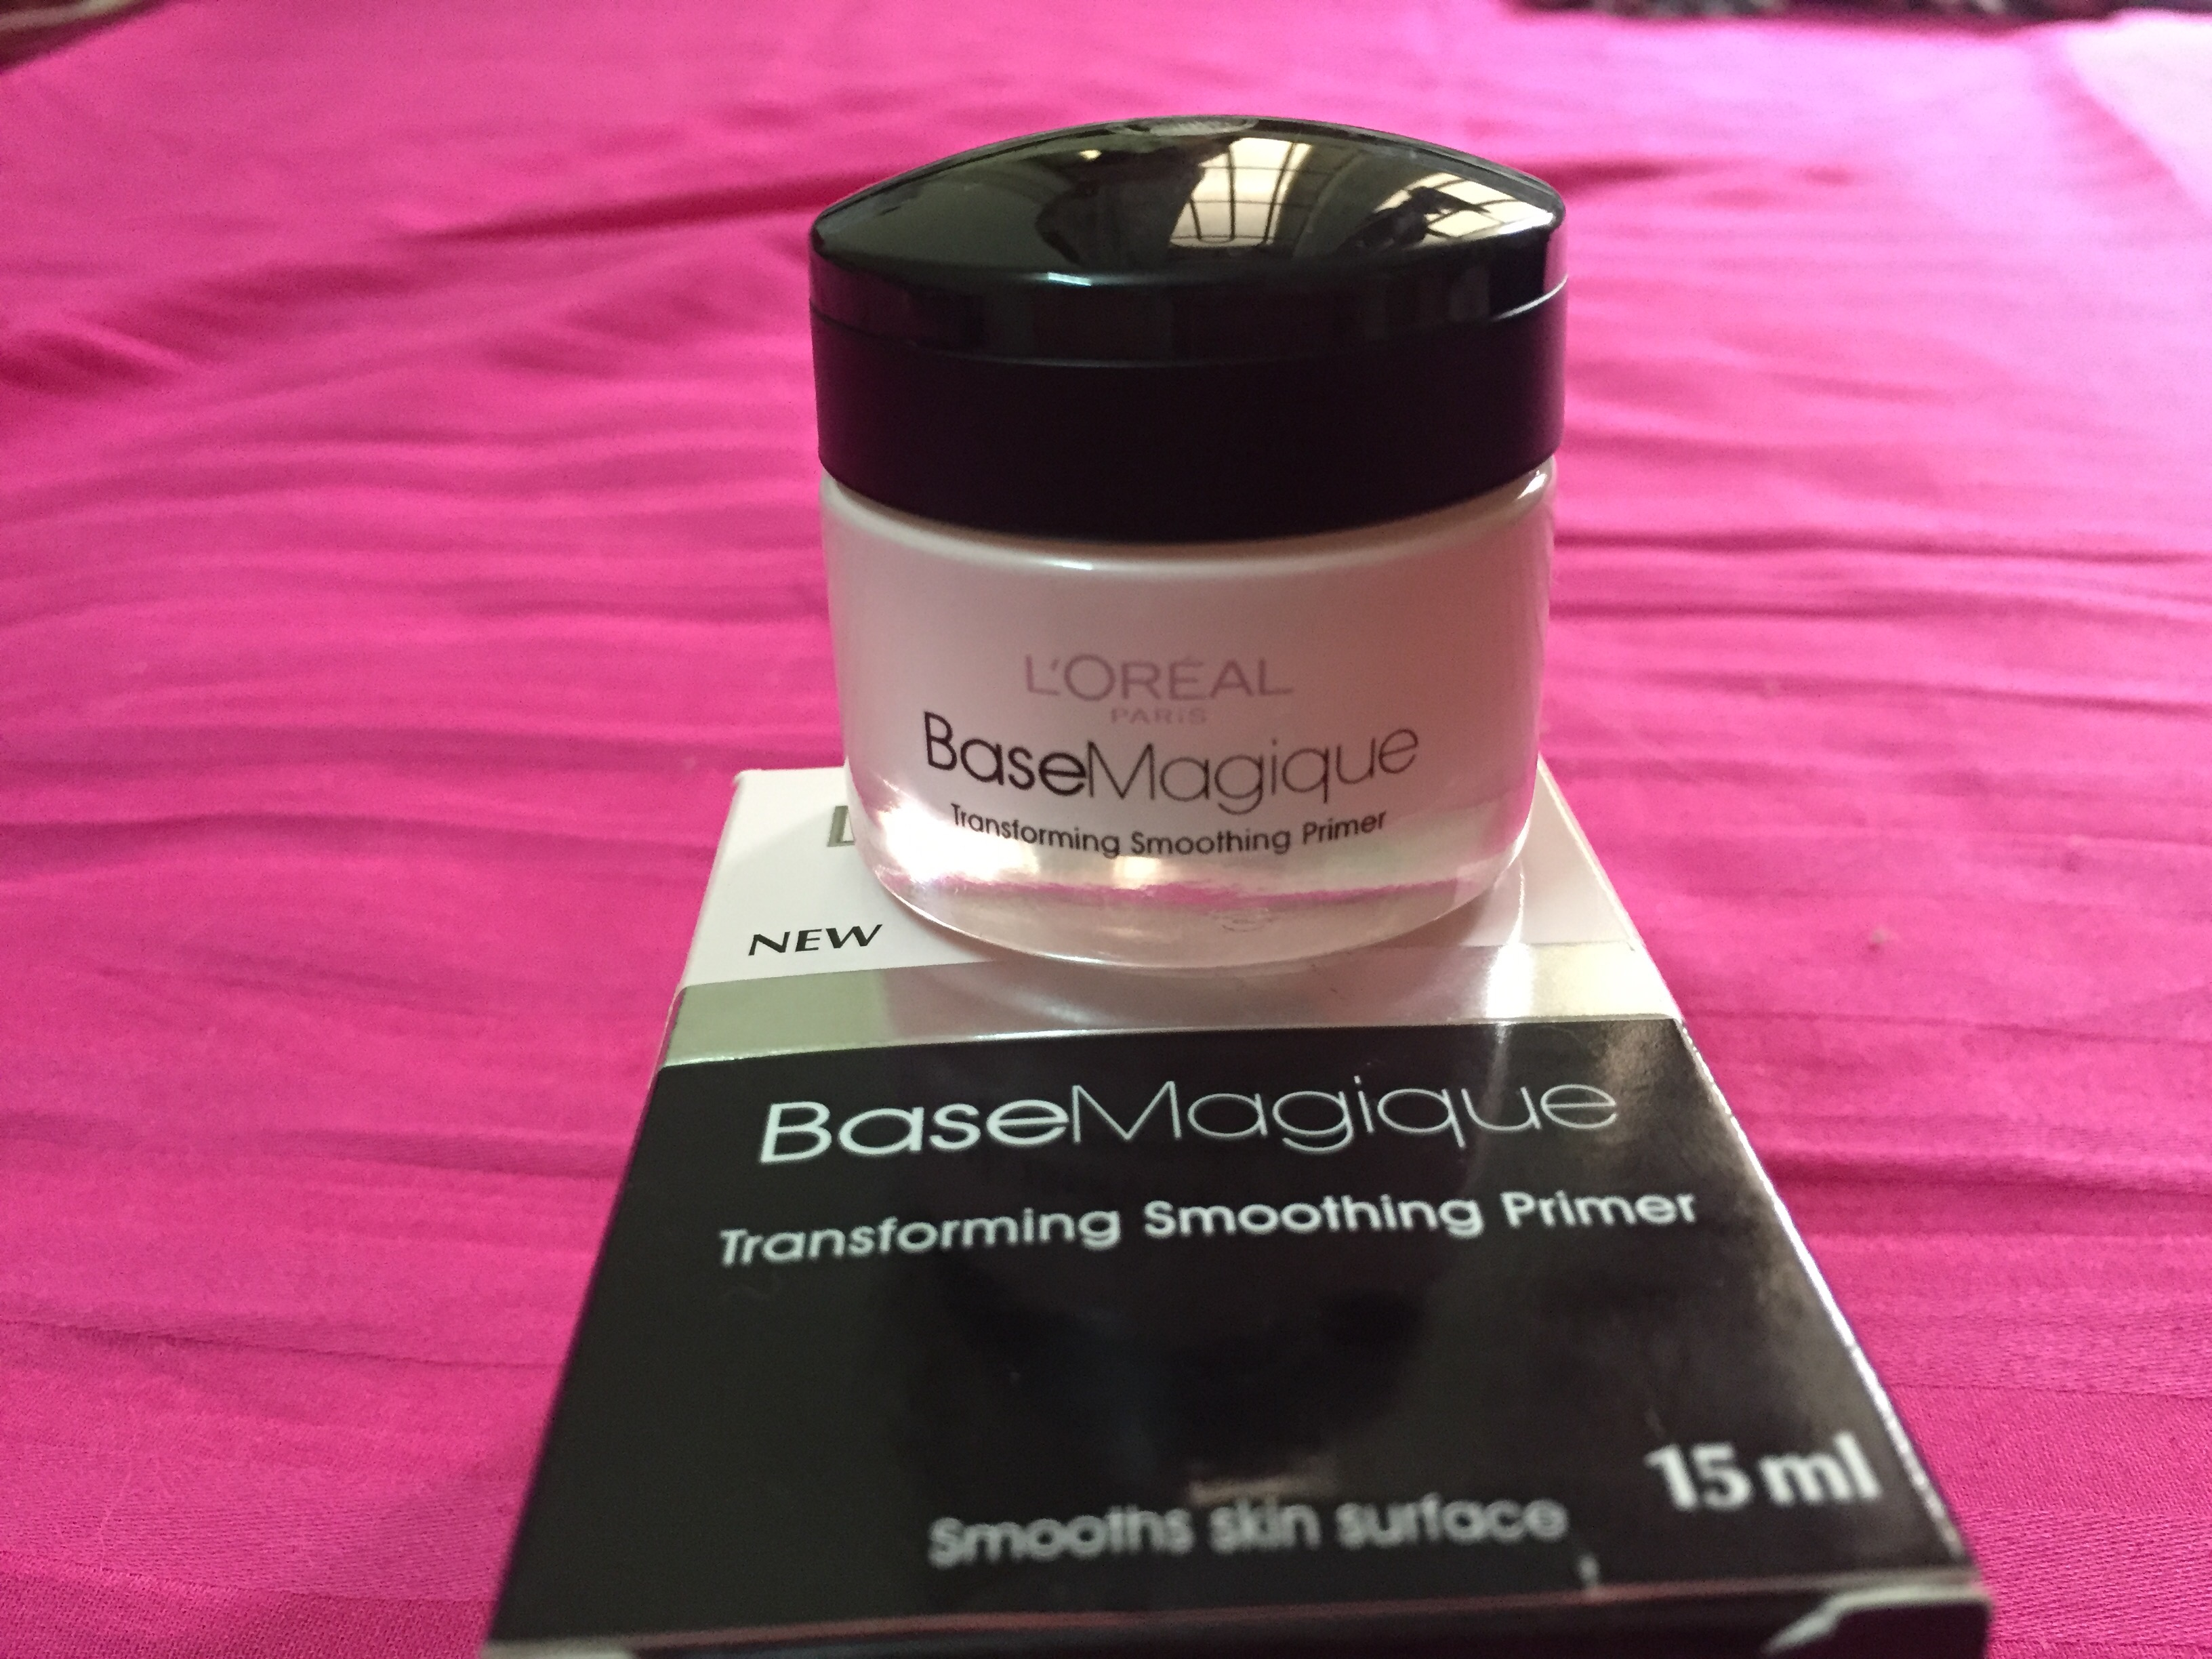 REVIEW OF THE L'OREAL BASE MAGIQUE TRANSFORMING SMOOTHING PRIMER !